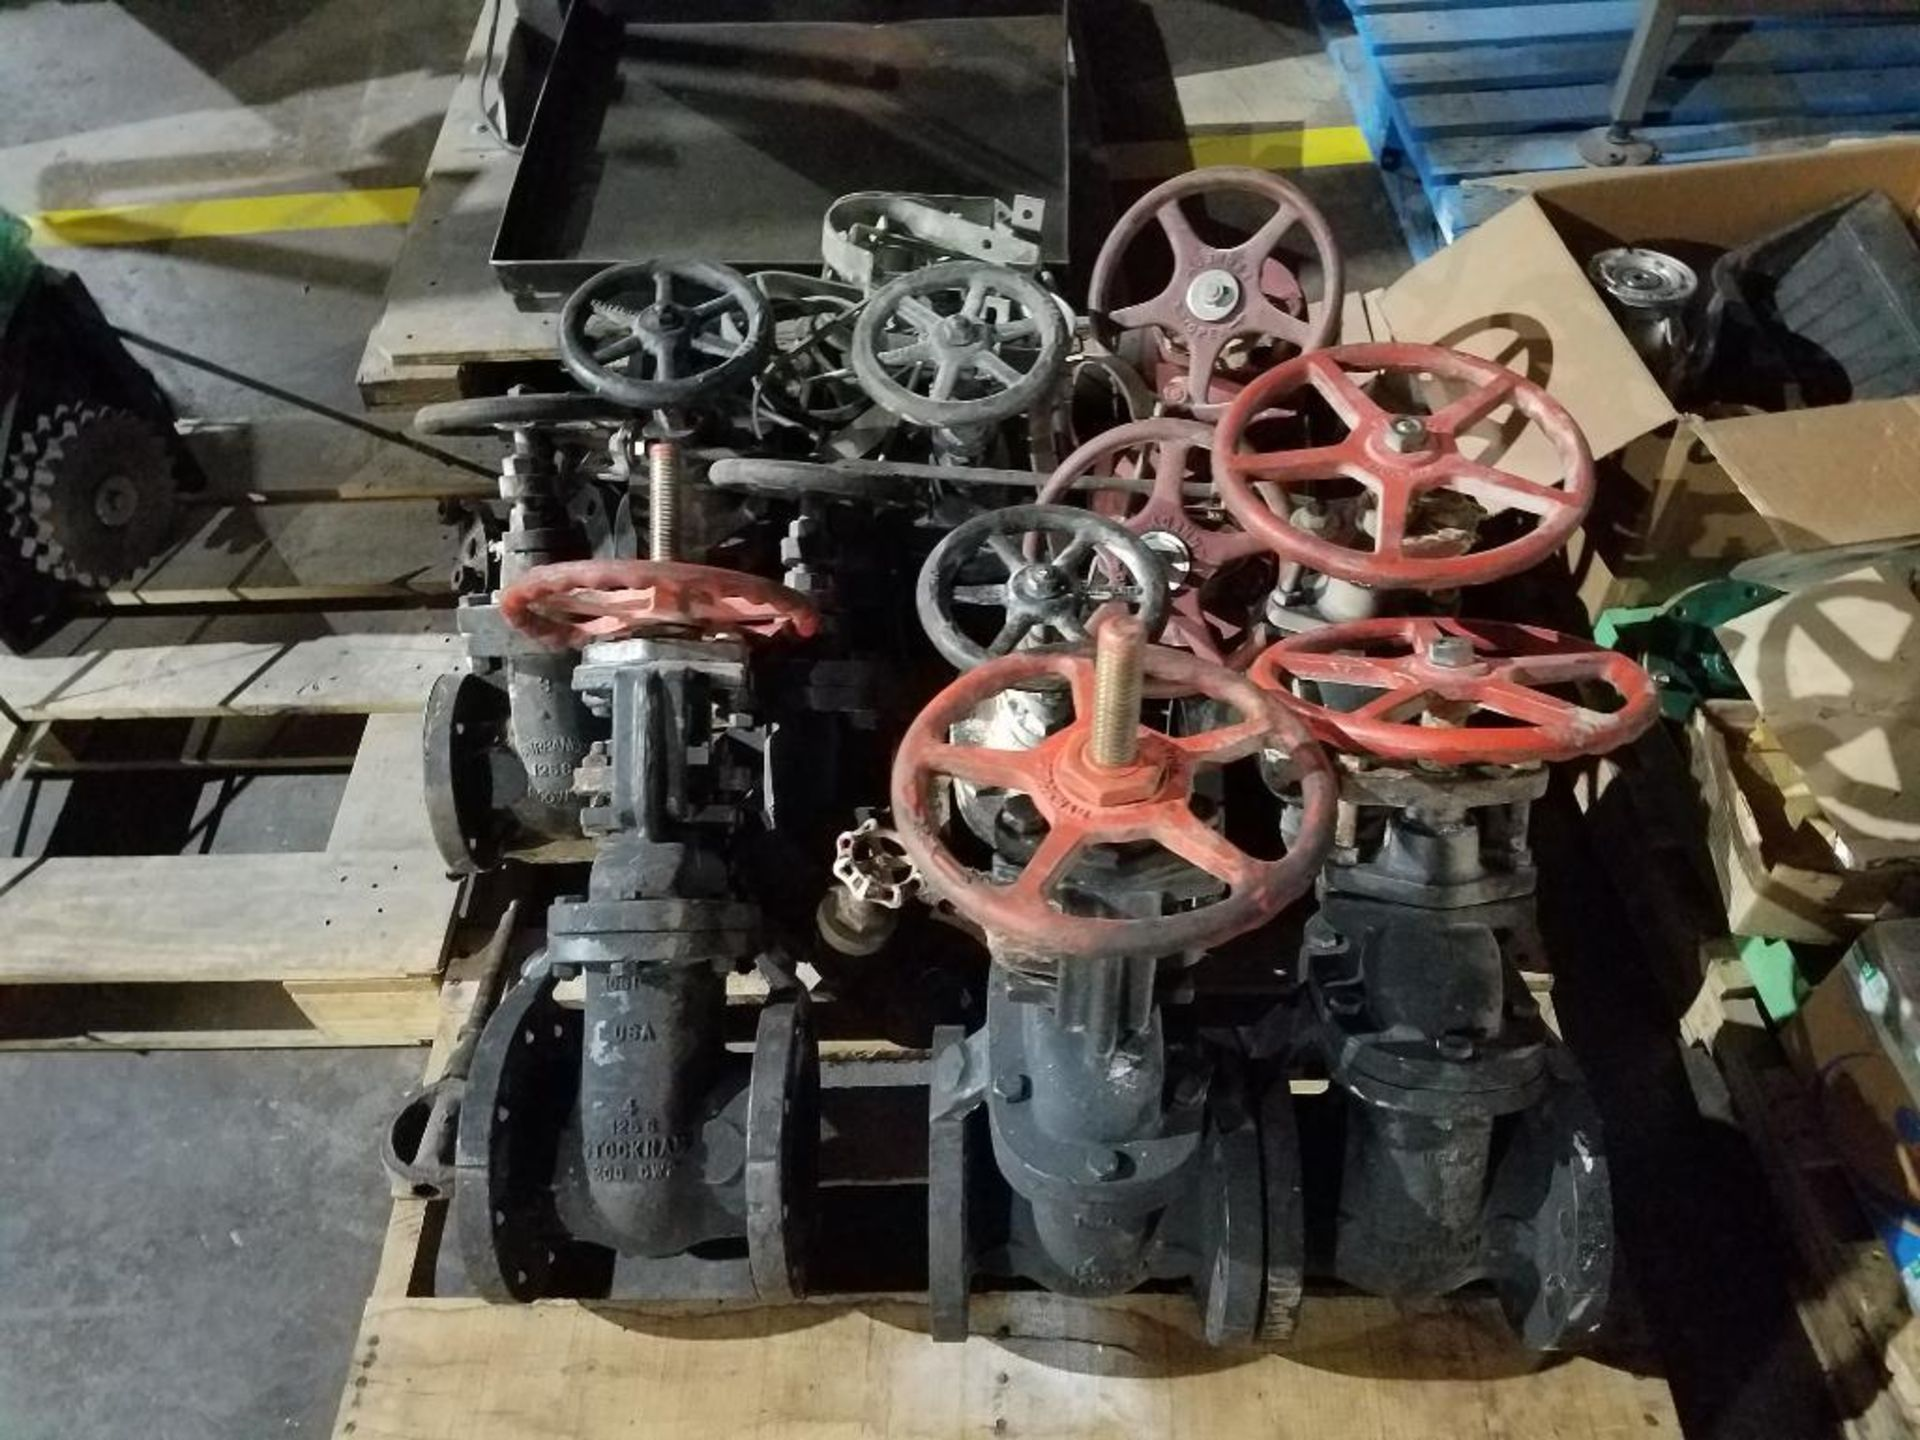 various replacement parts, motors, fire sprinkler valves - Image 2 of 3